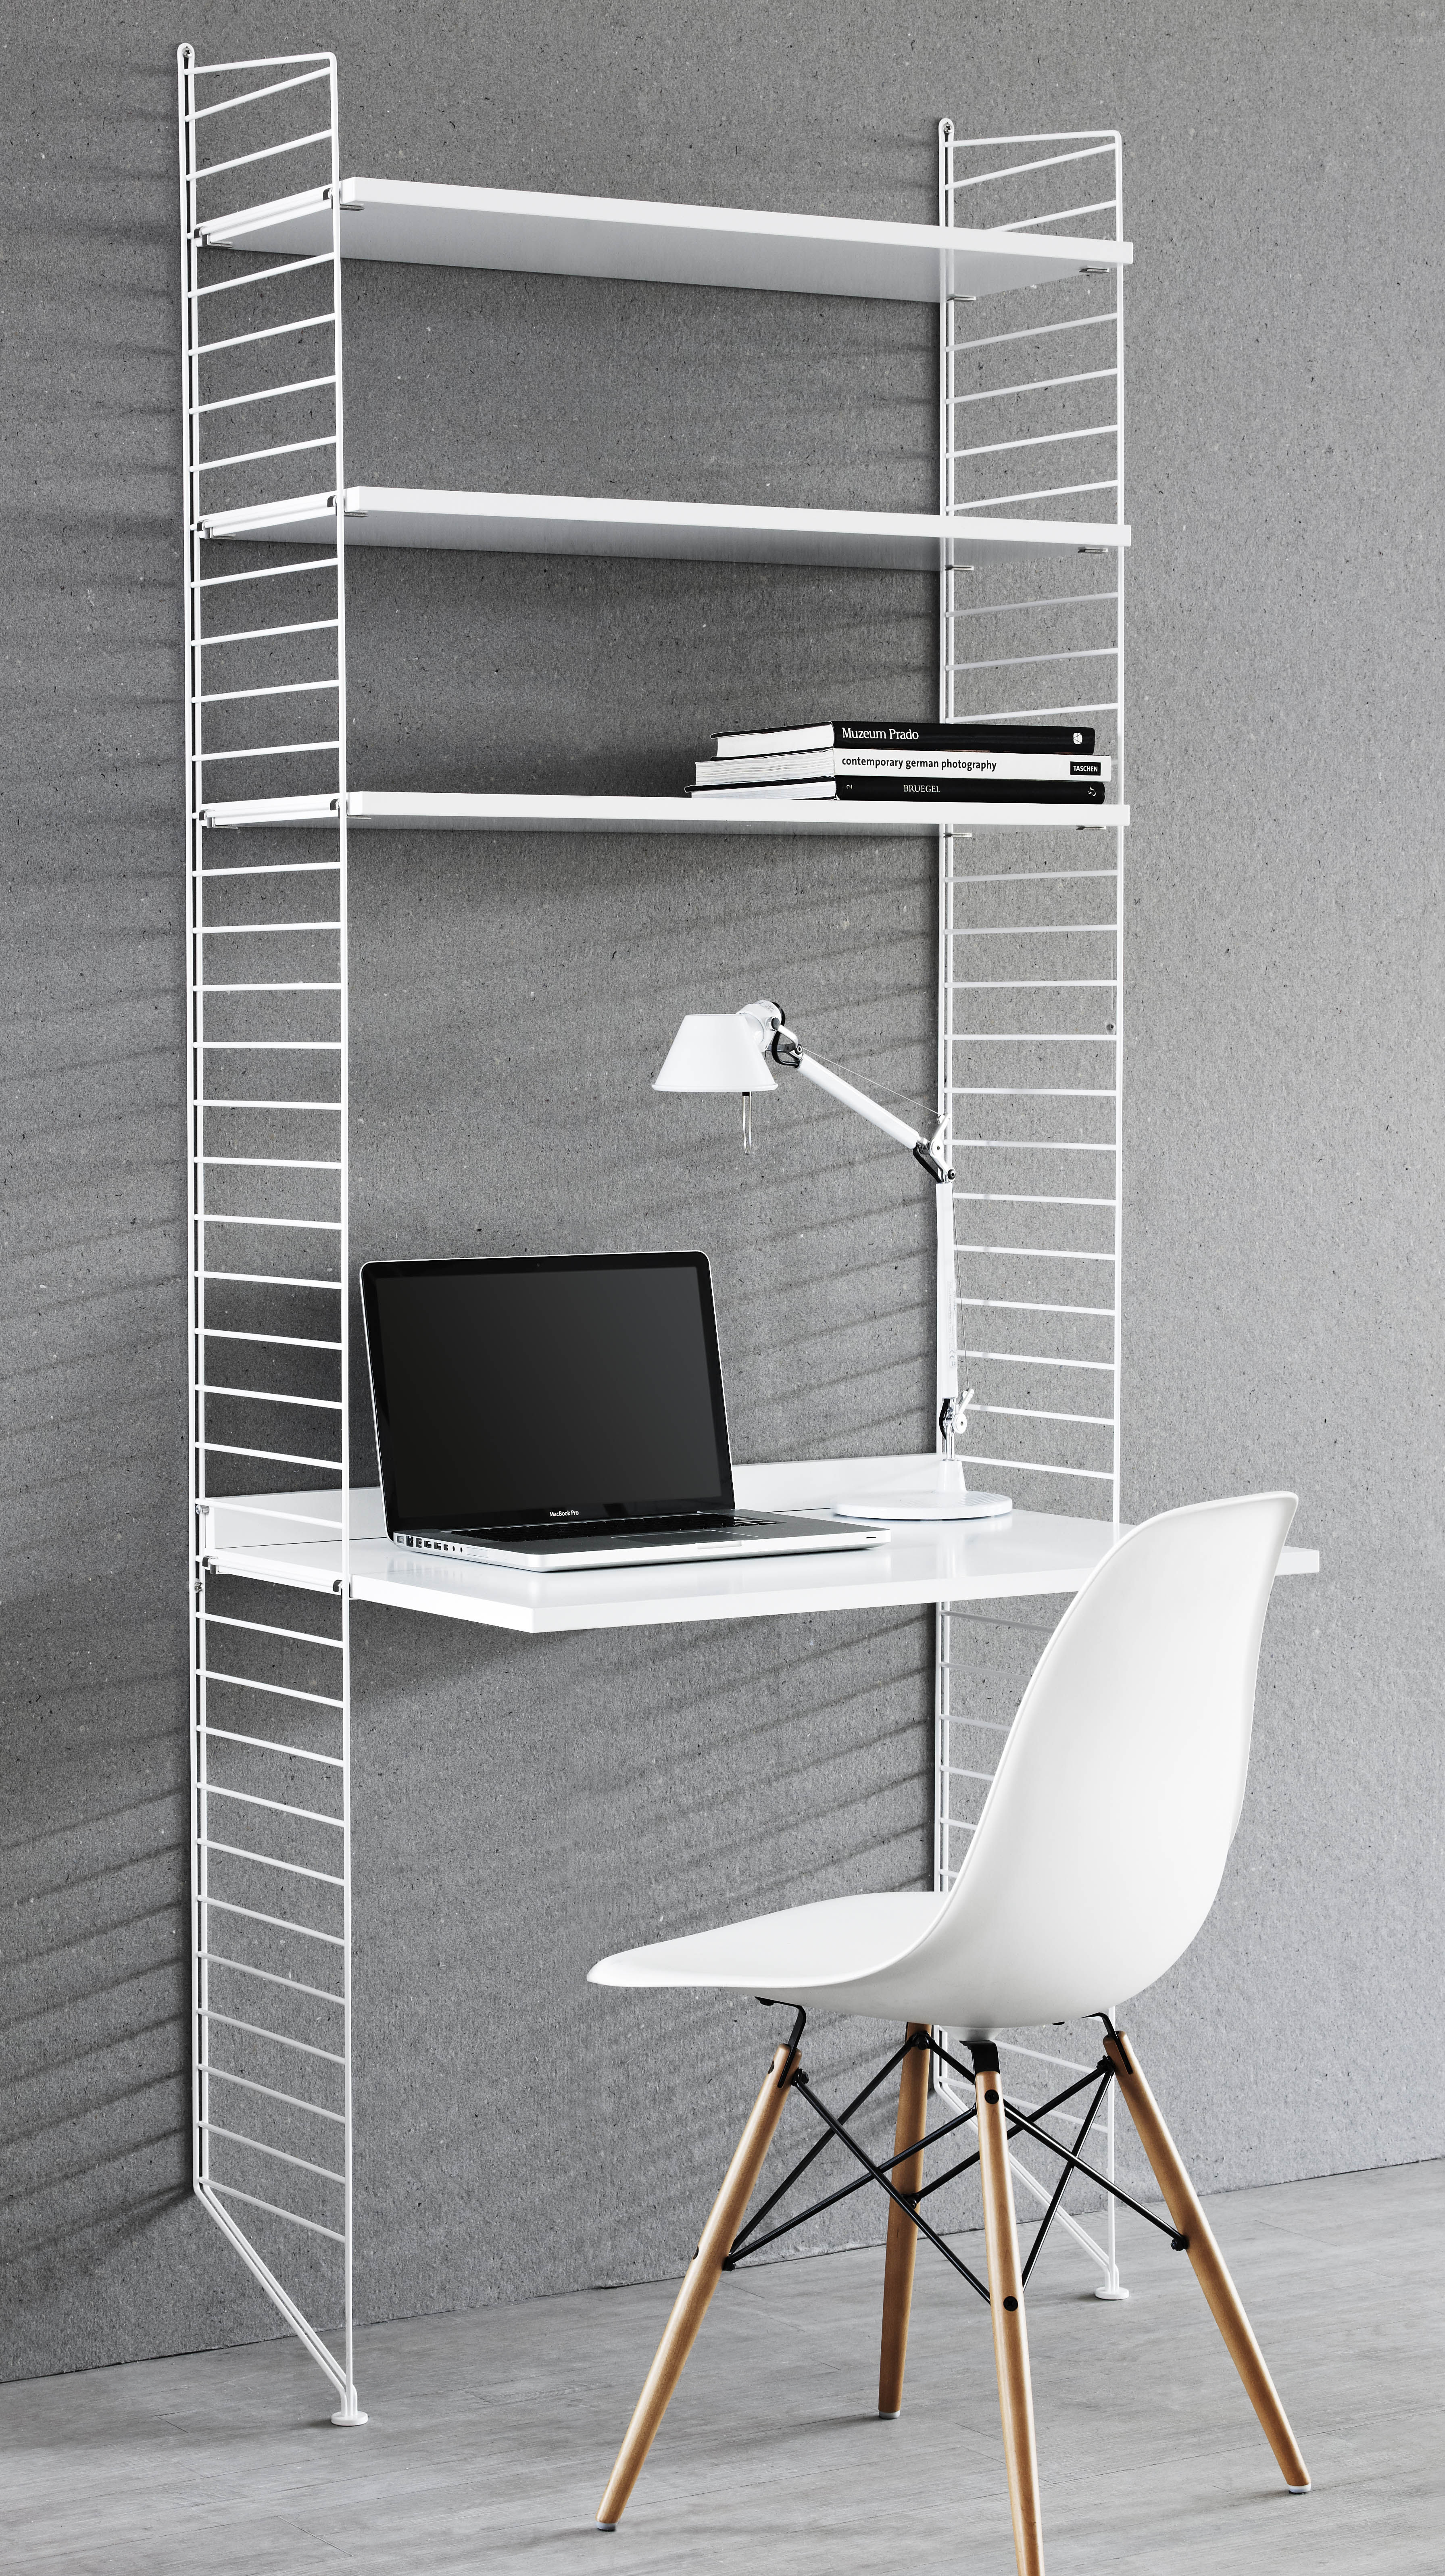 string desk l 78 x h 200 cm white by string furniture. Black Bedroom Furniture Sets. Home Design Ideas